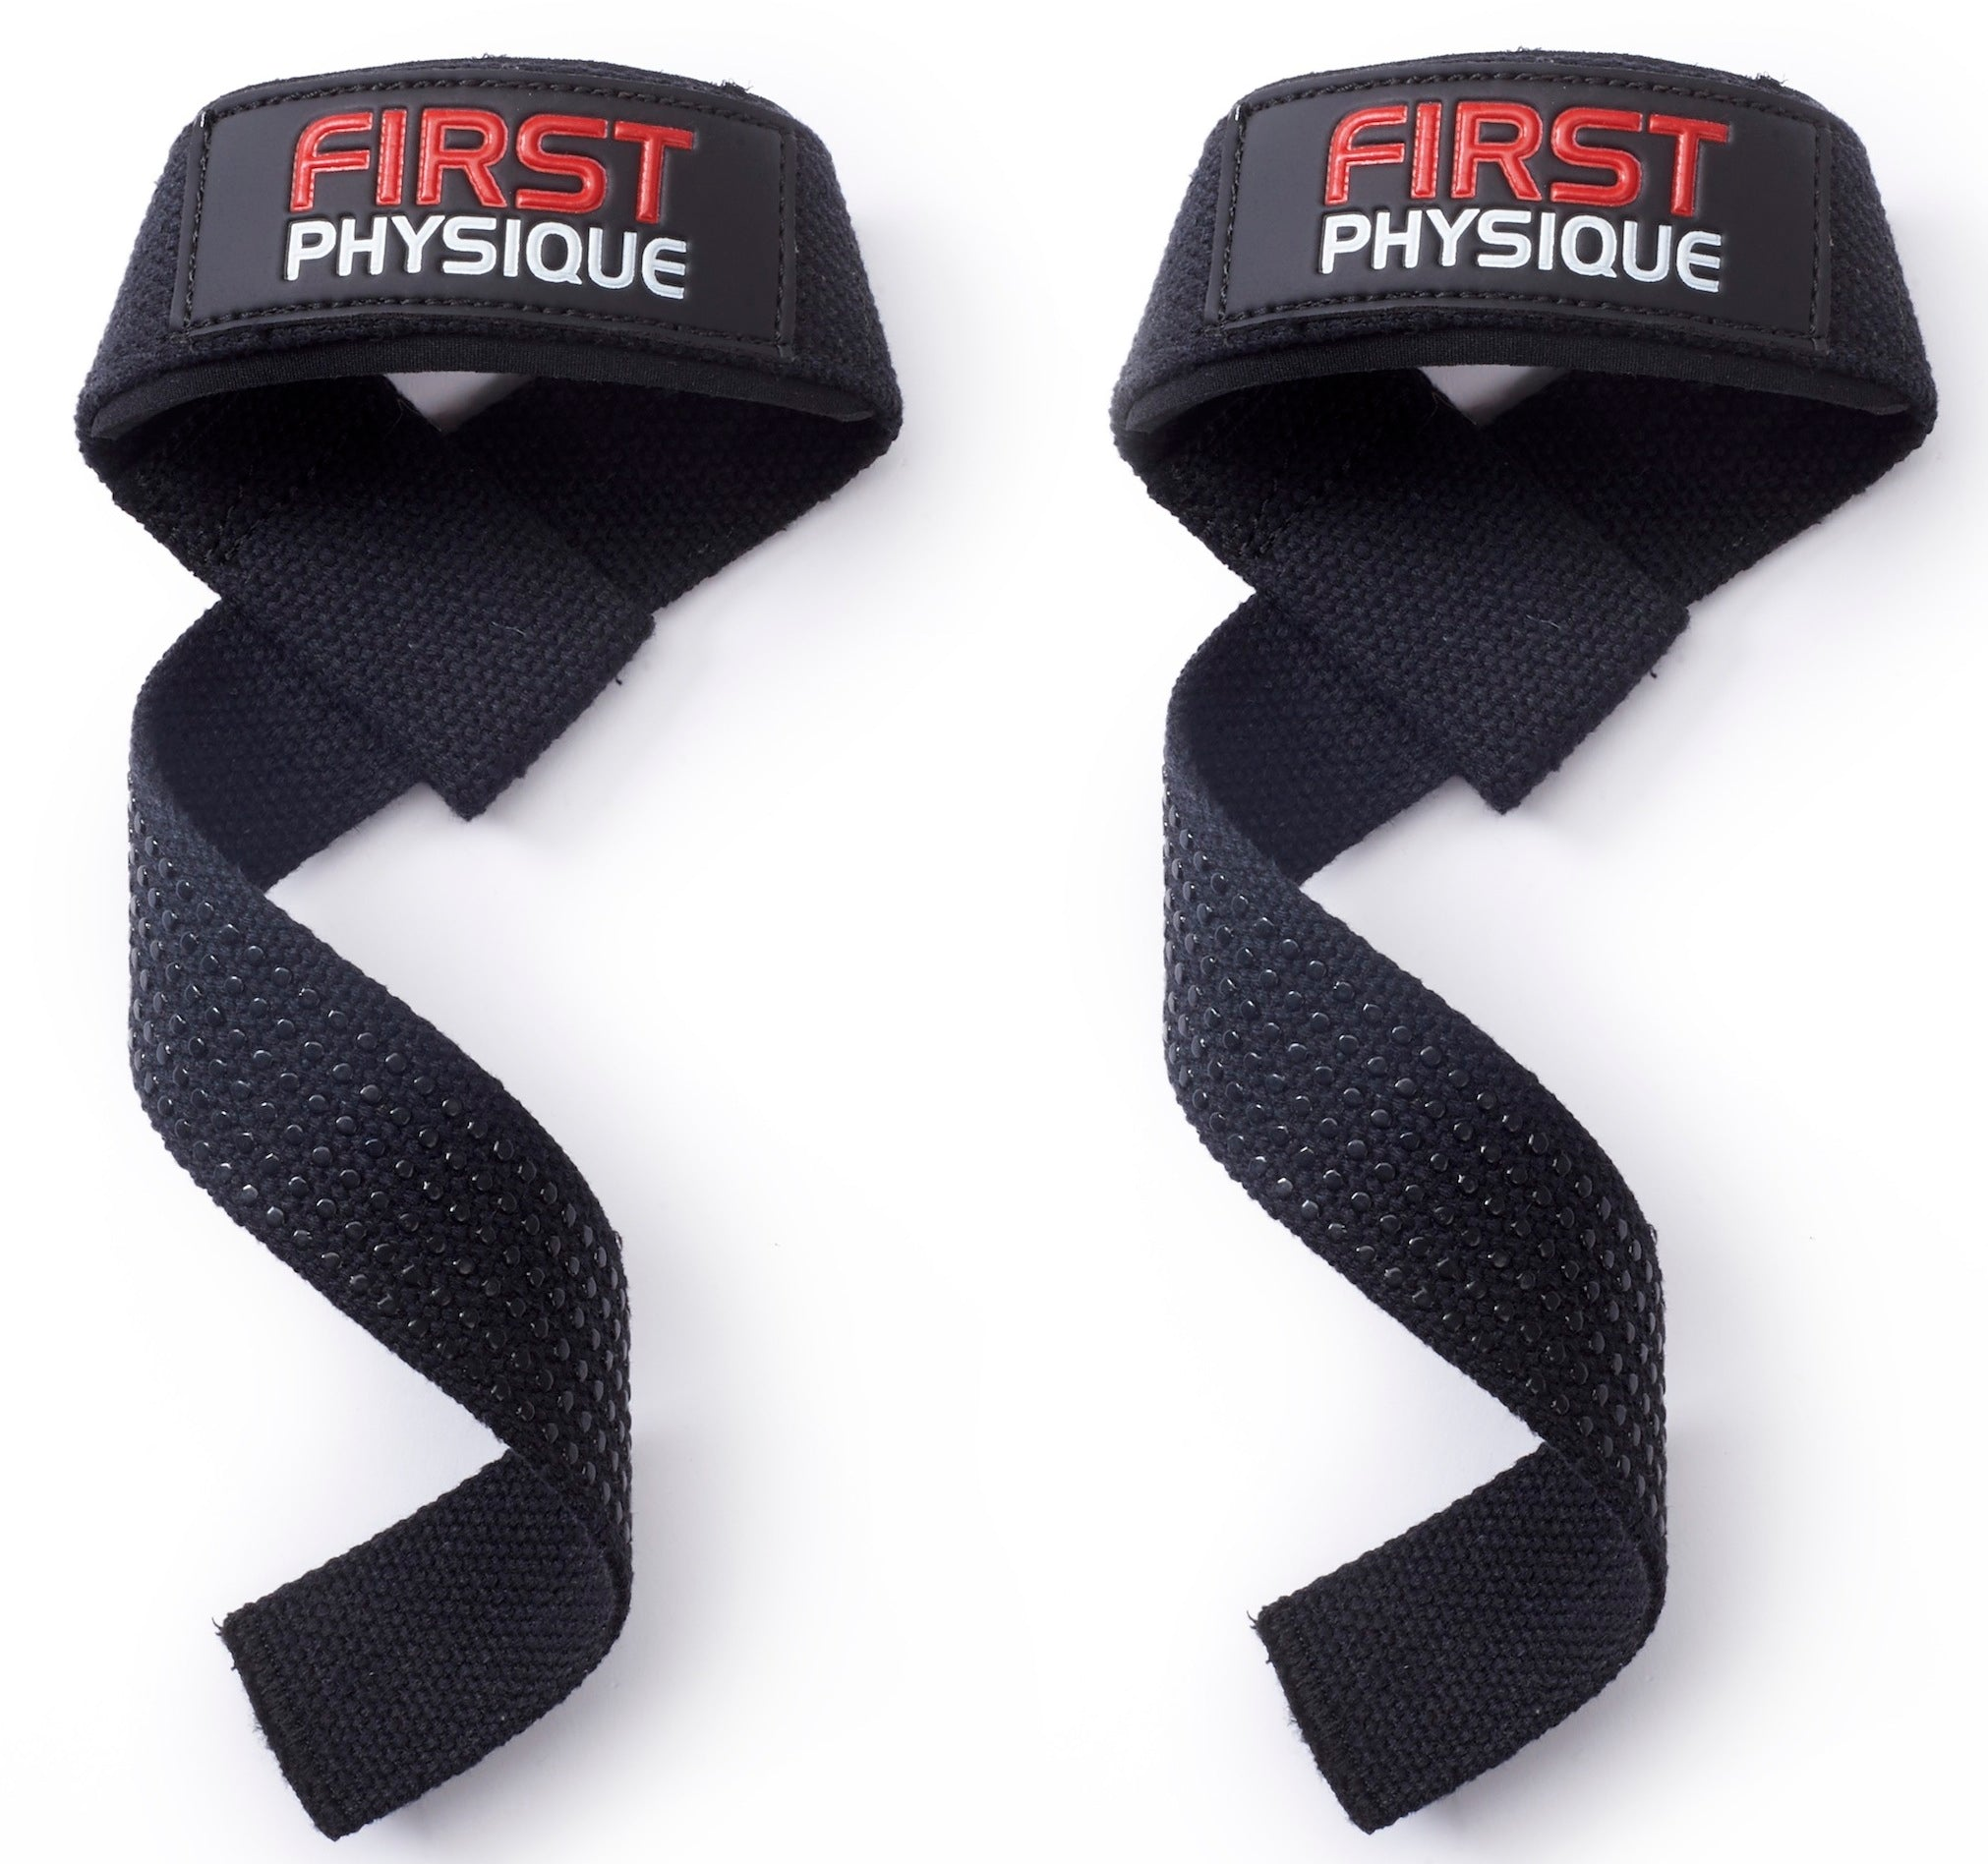 Weight Lifting Gym Straps for Wrist Support - First Physique